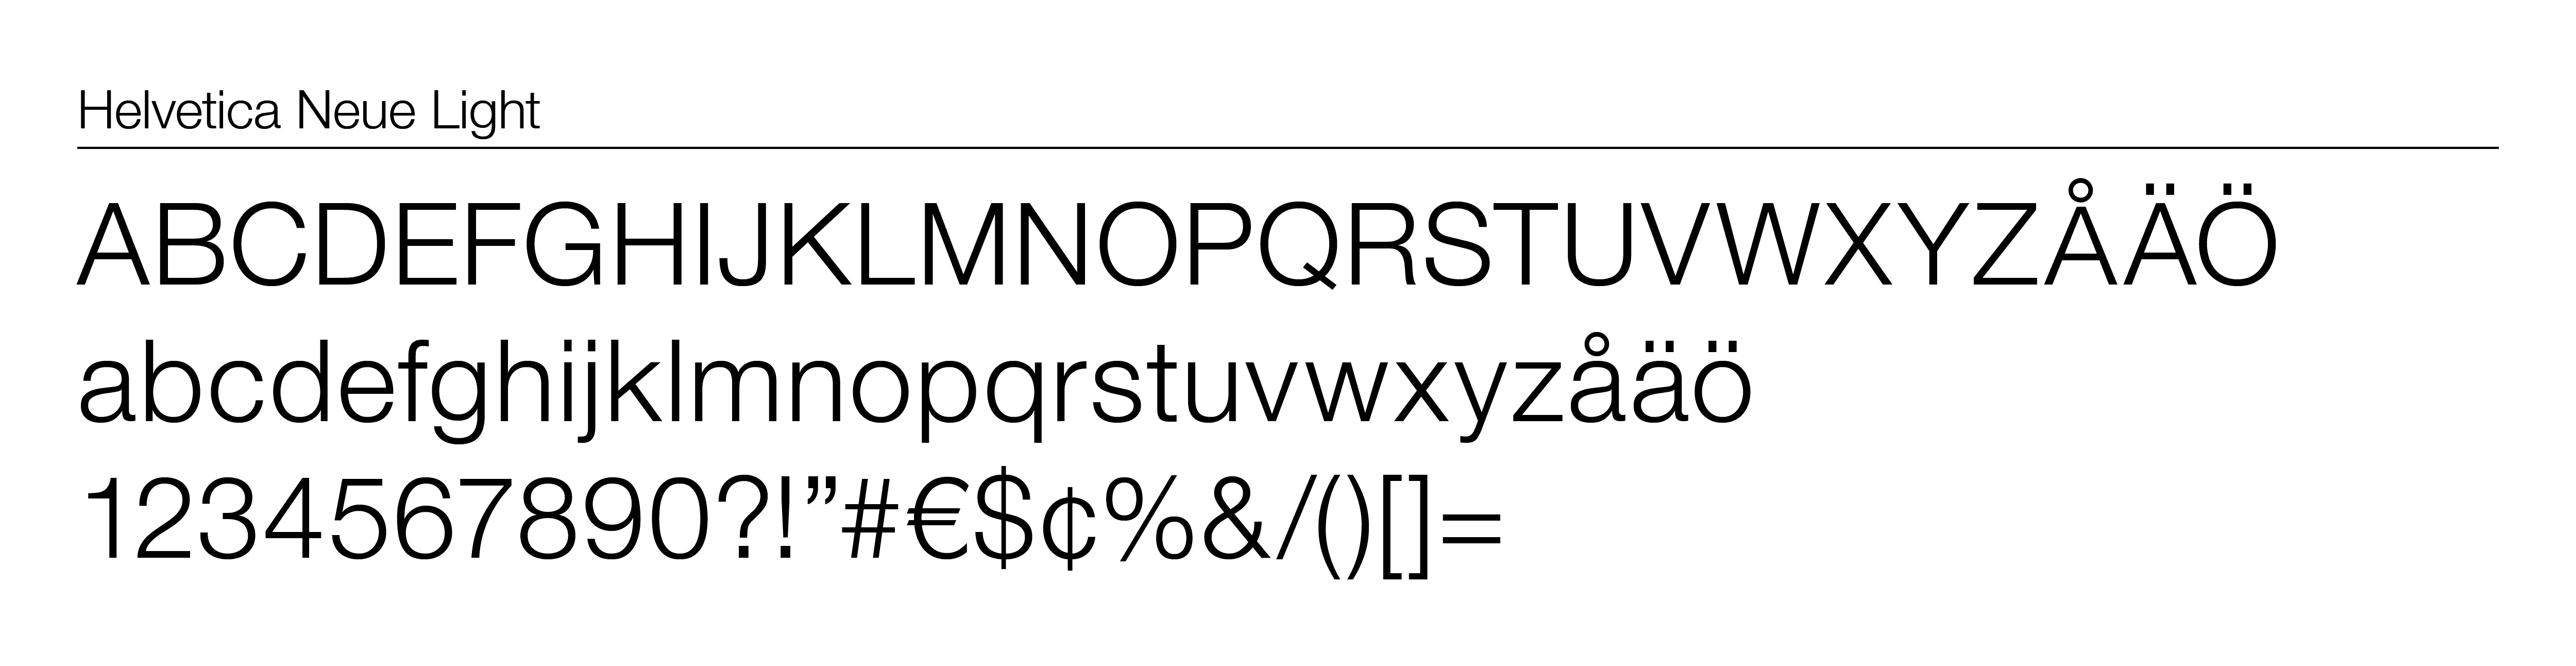 deBroome's default font when not available for digital display in Helevtica Neue Light